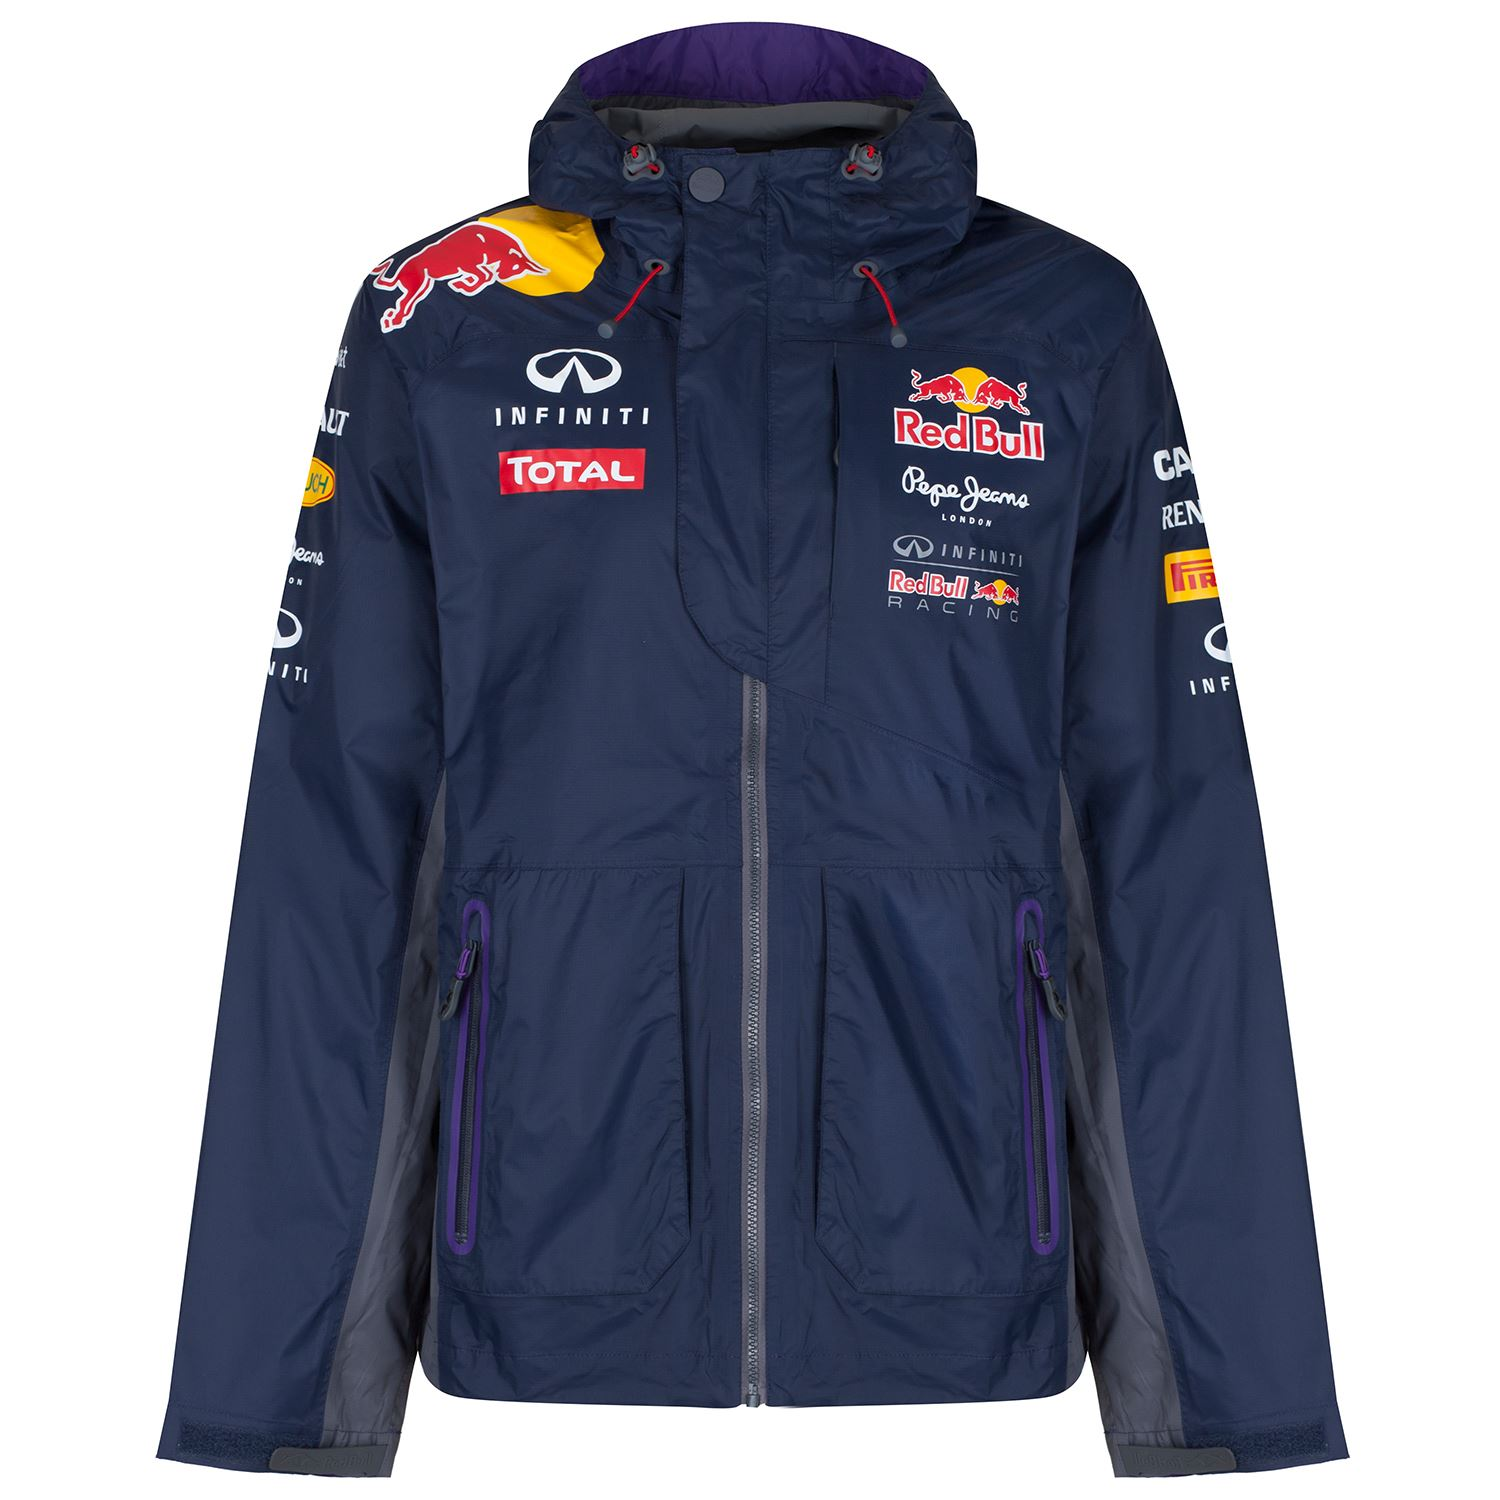 Car Racing Jackets Uk